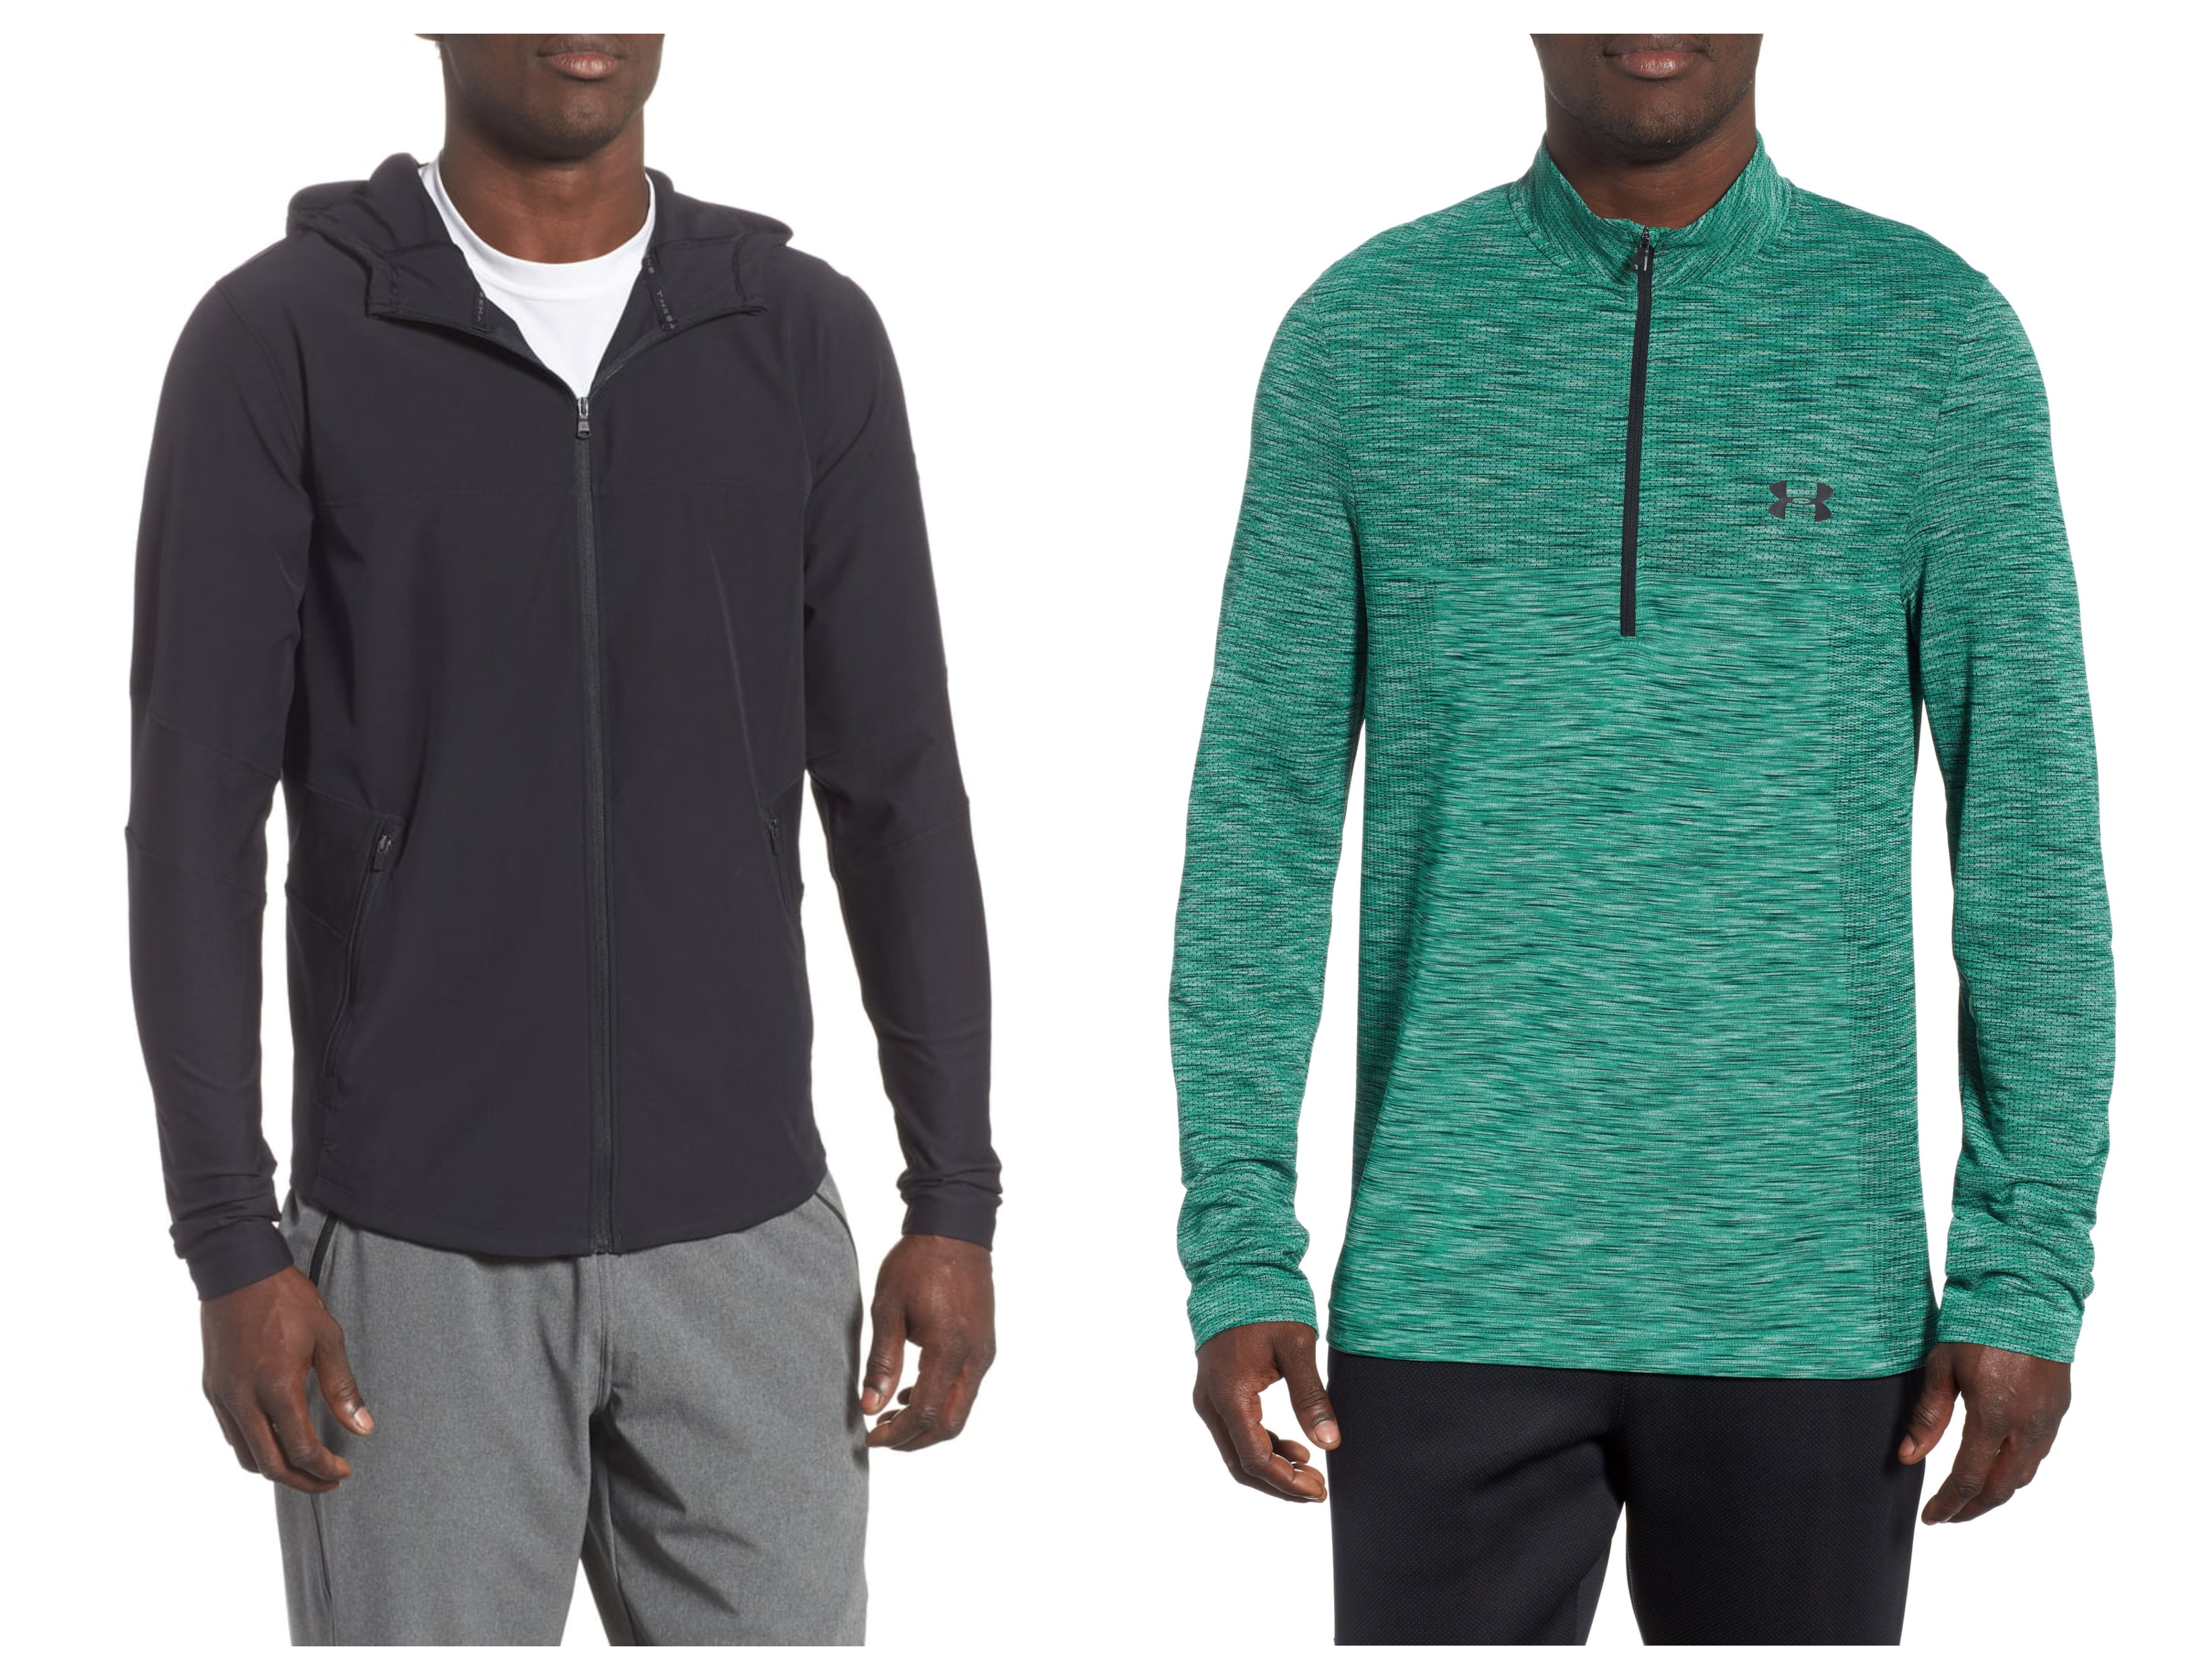 7d74691c0a2 Nordstrom  50% Off Men s Under Armour Hoodies   Pullovers + Free Shipping!